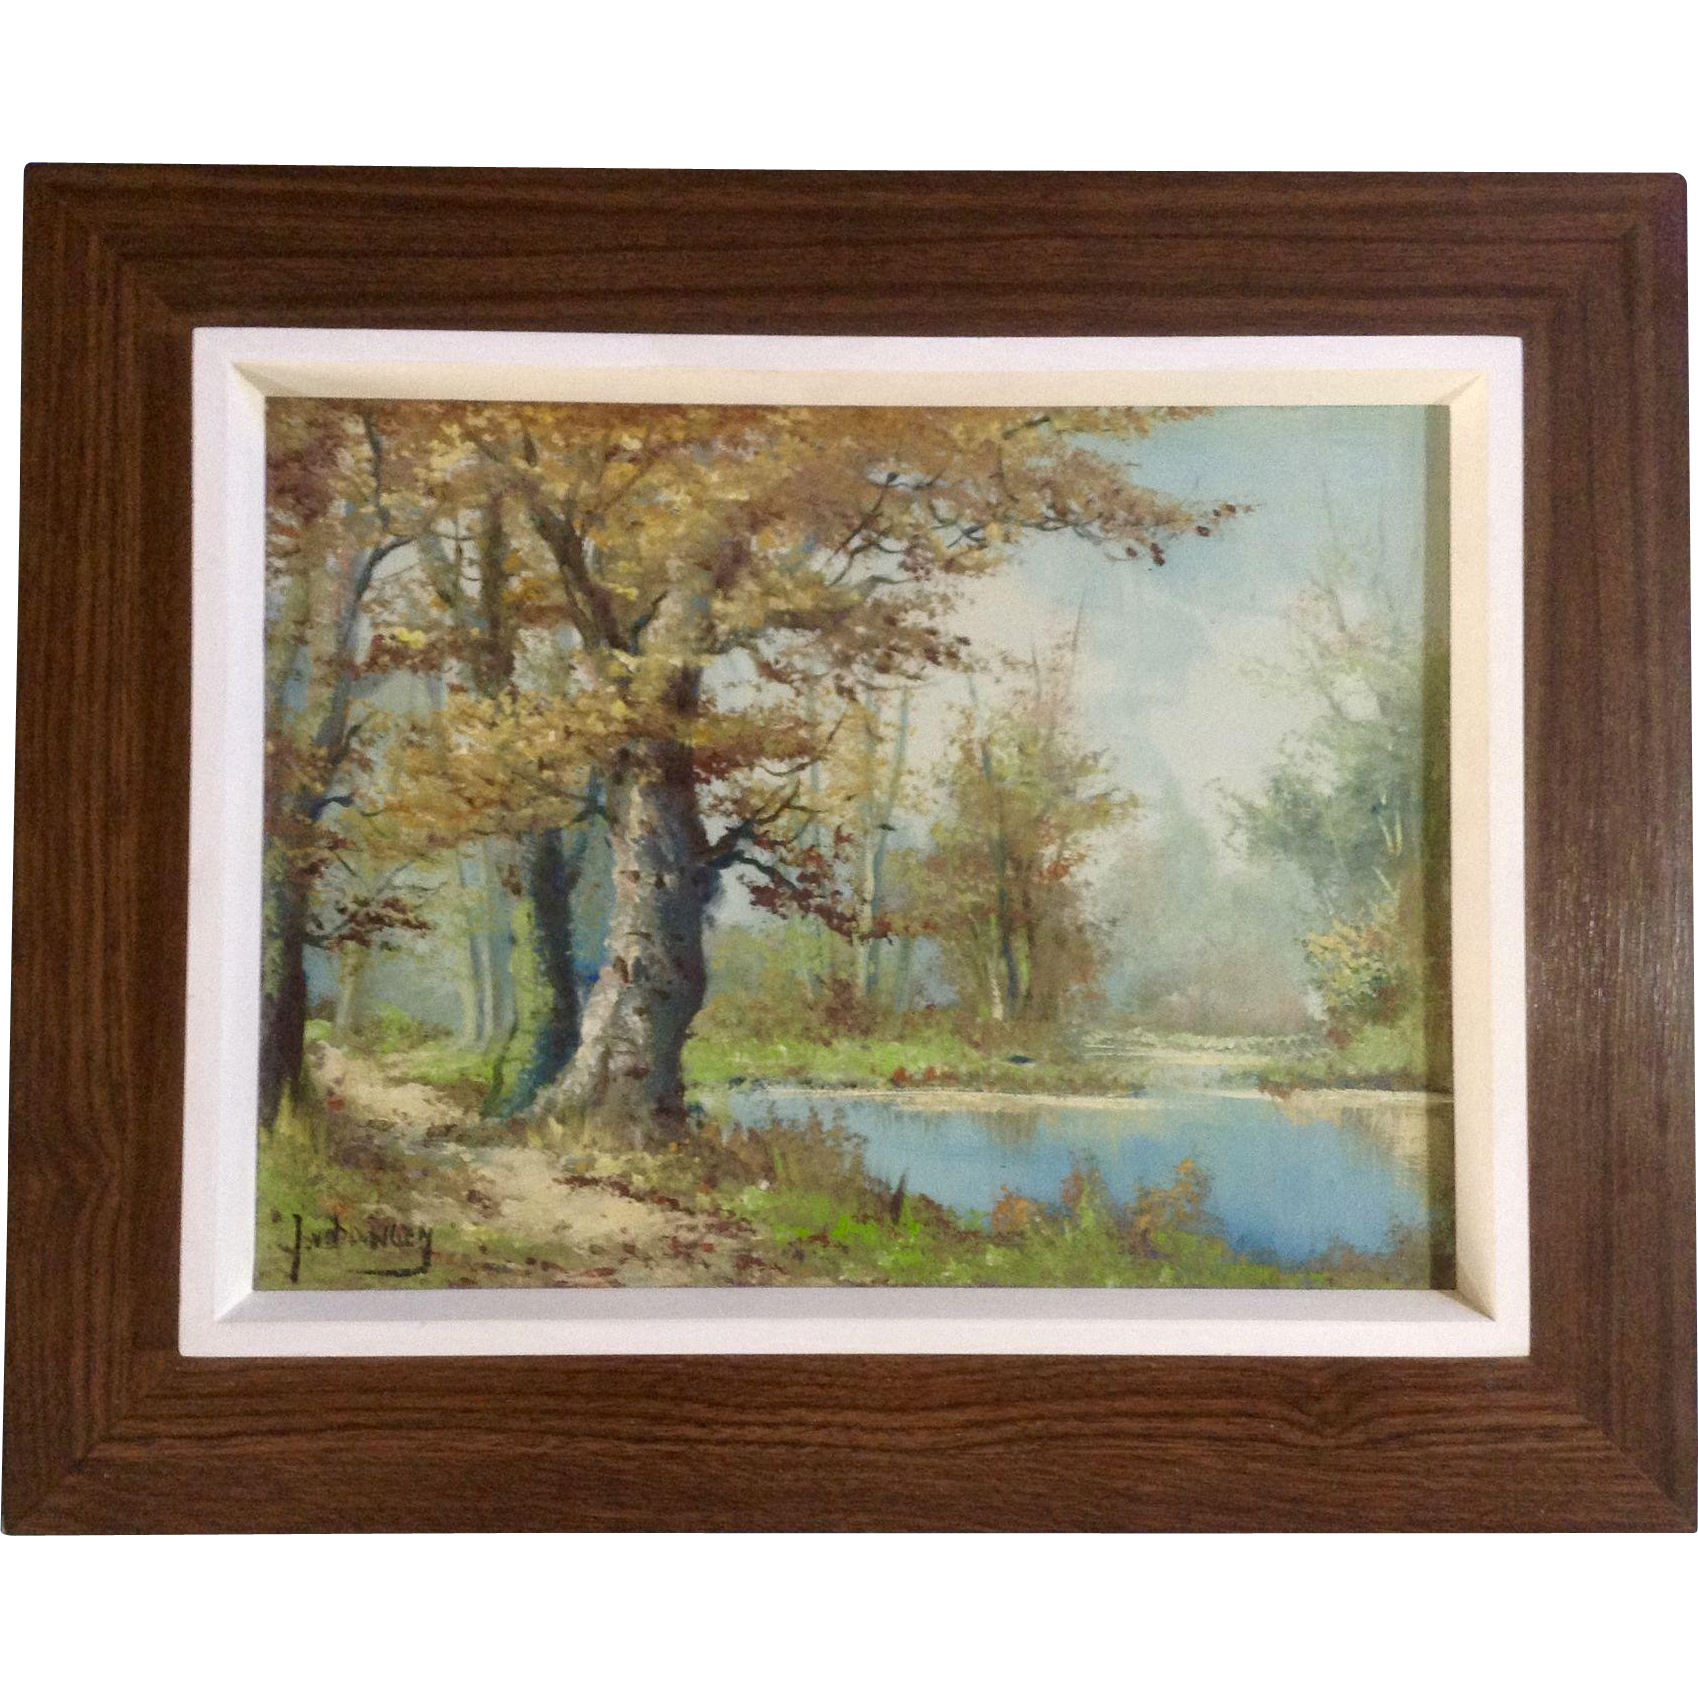 J Van Dongen Landscape Oil Painting Old Tree By The Pond